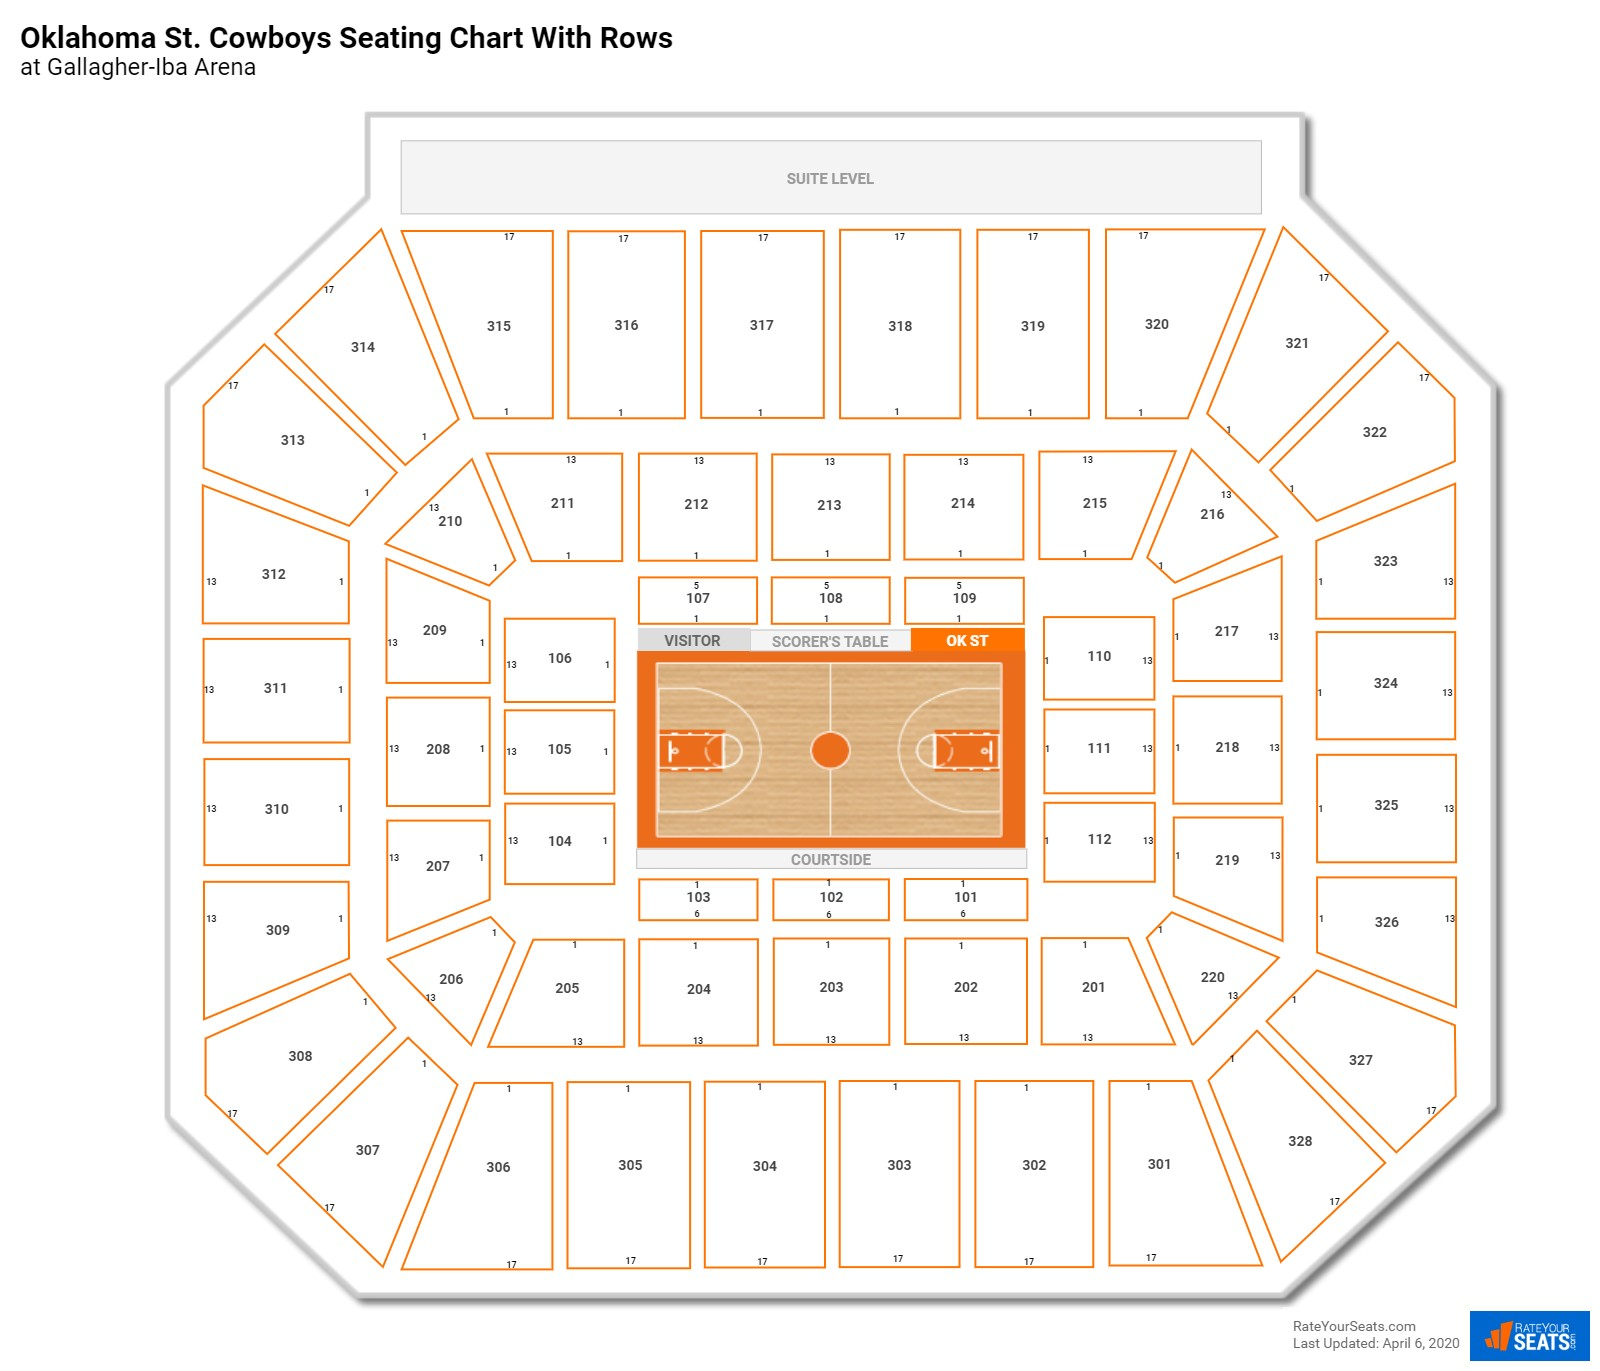 Gallagher-Iba Arena seating chart with rows